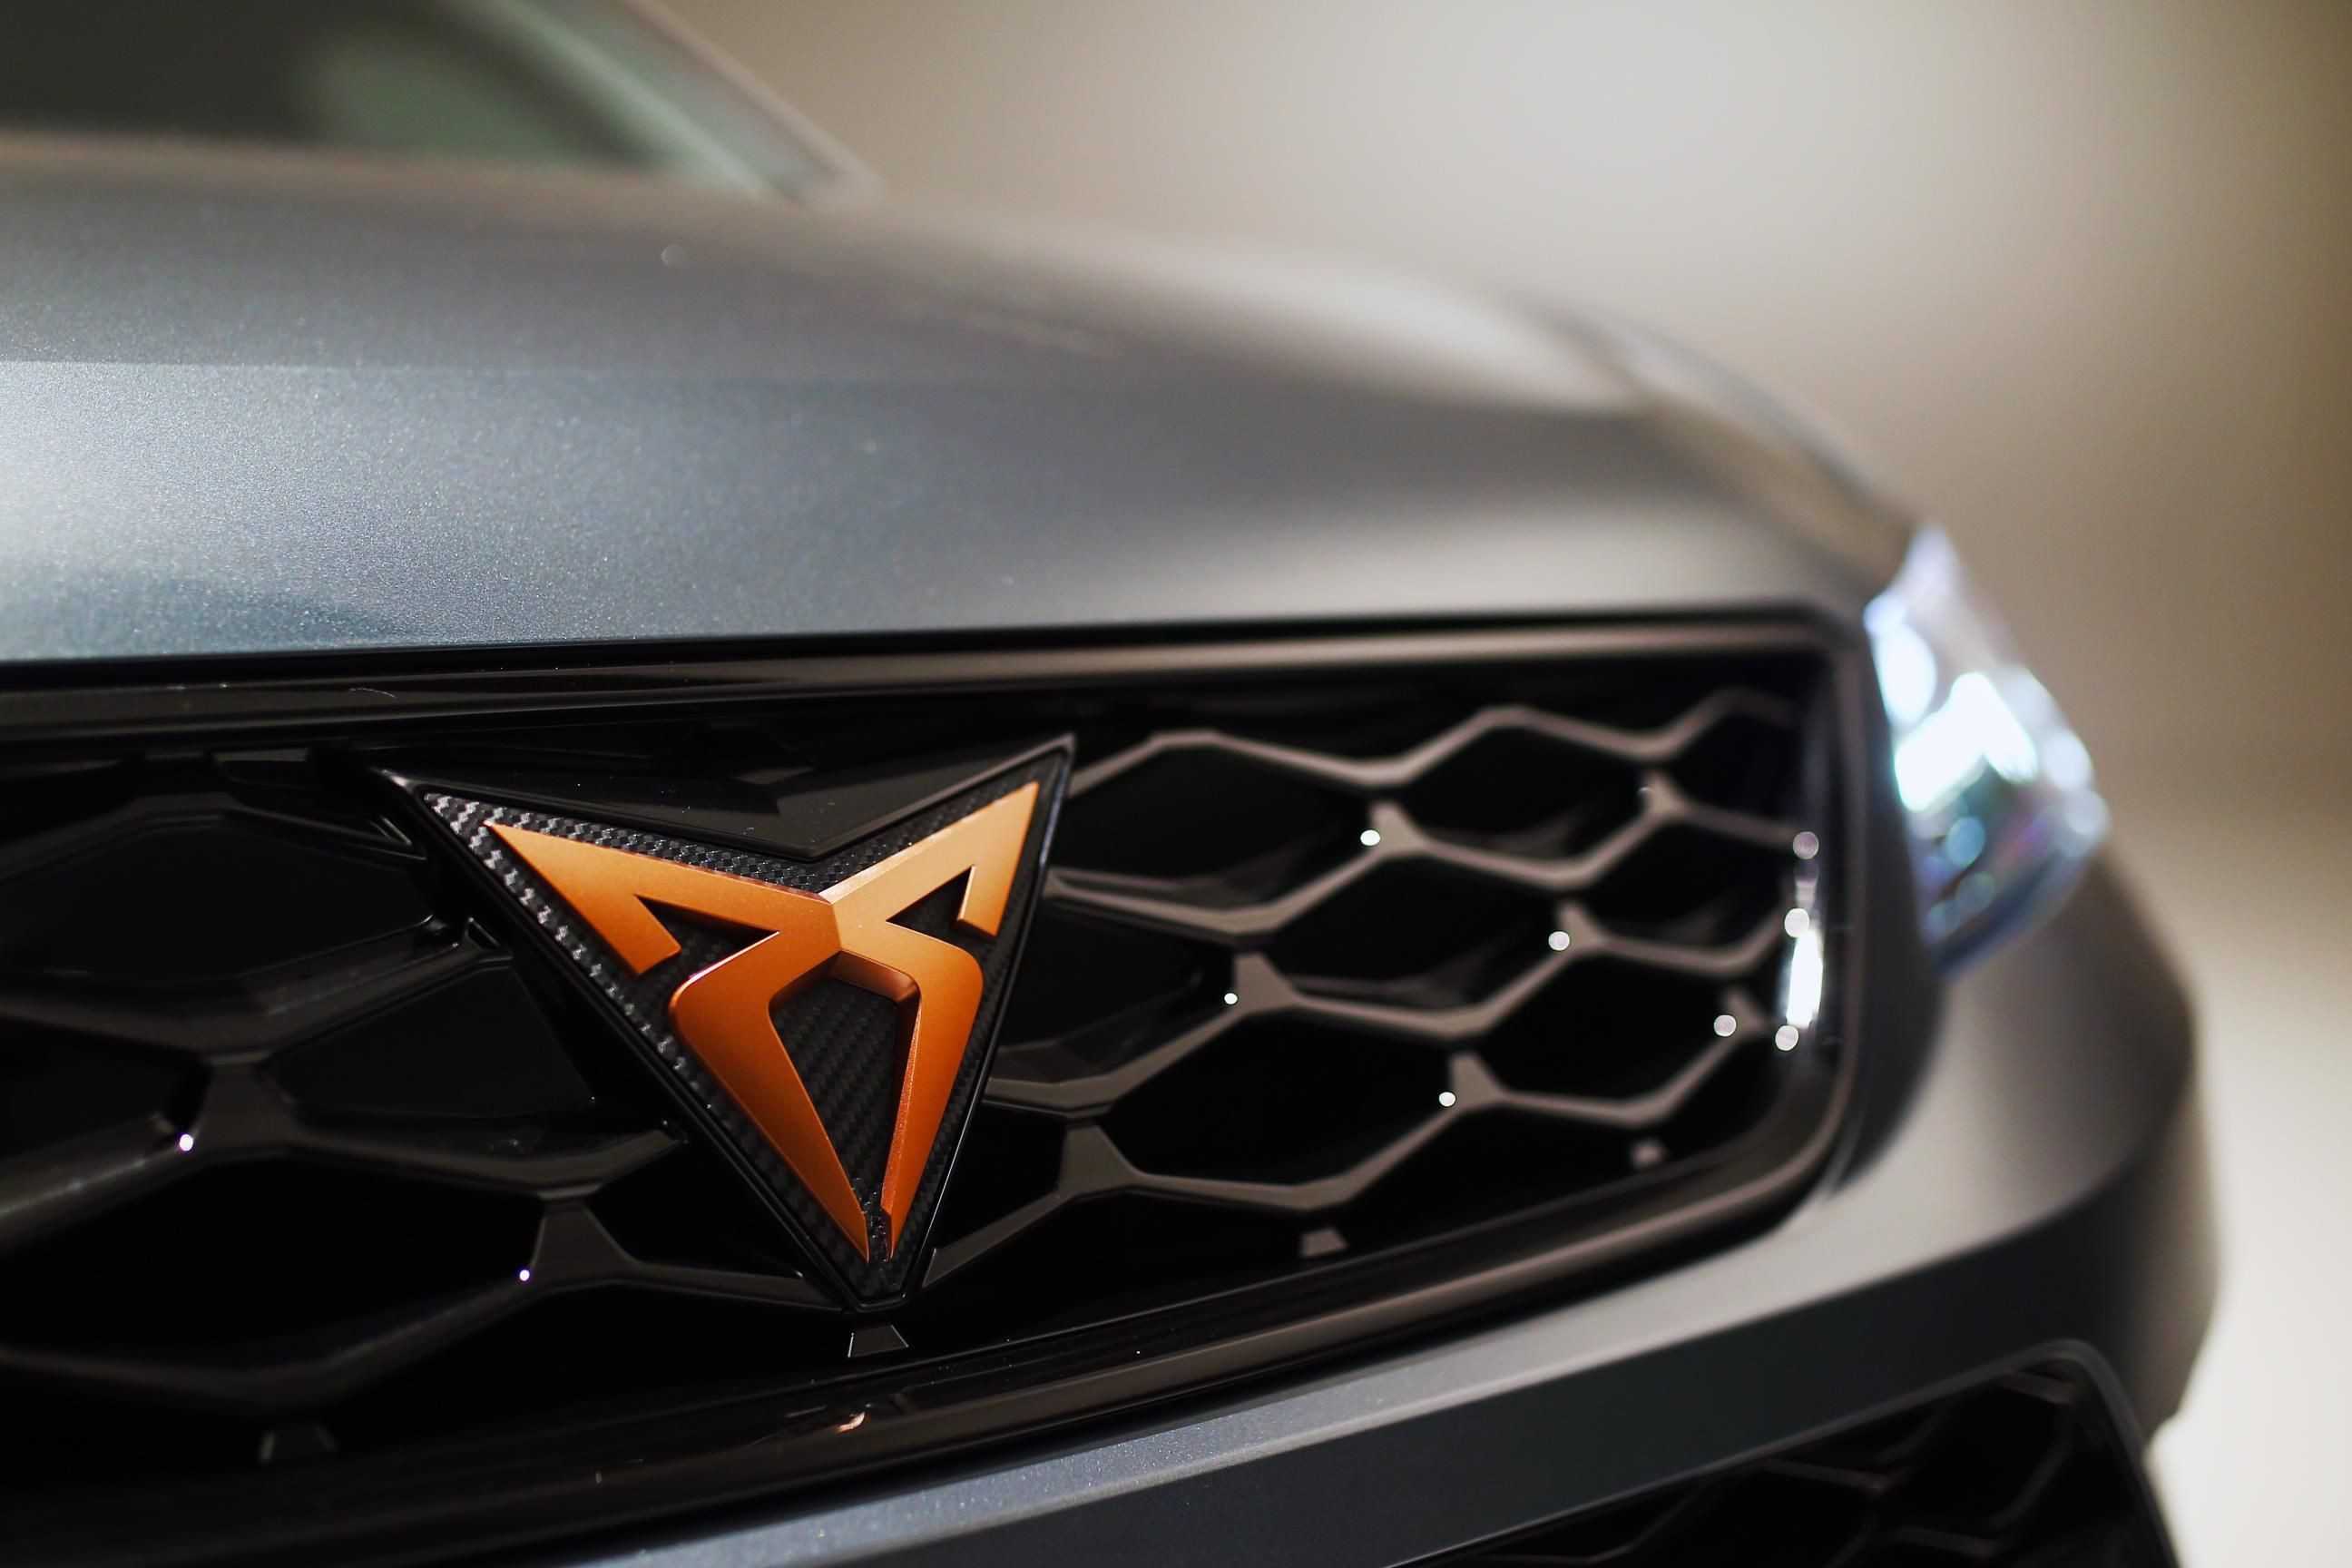 CUPRA Ateca with the new CUPRA logo on the grille